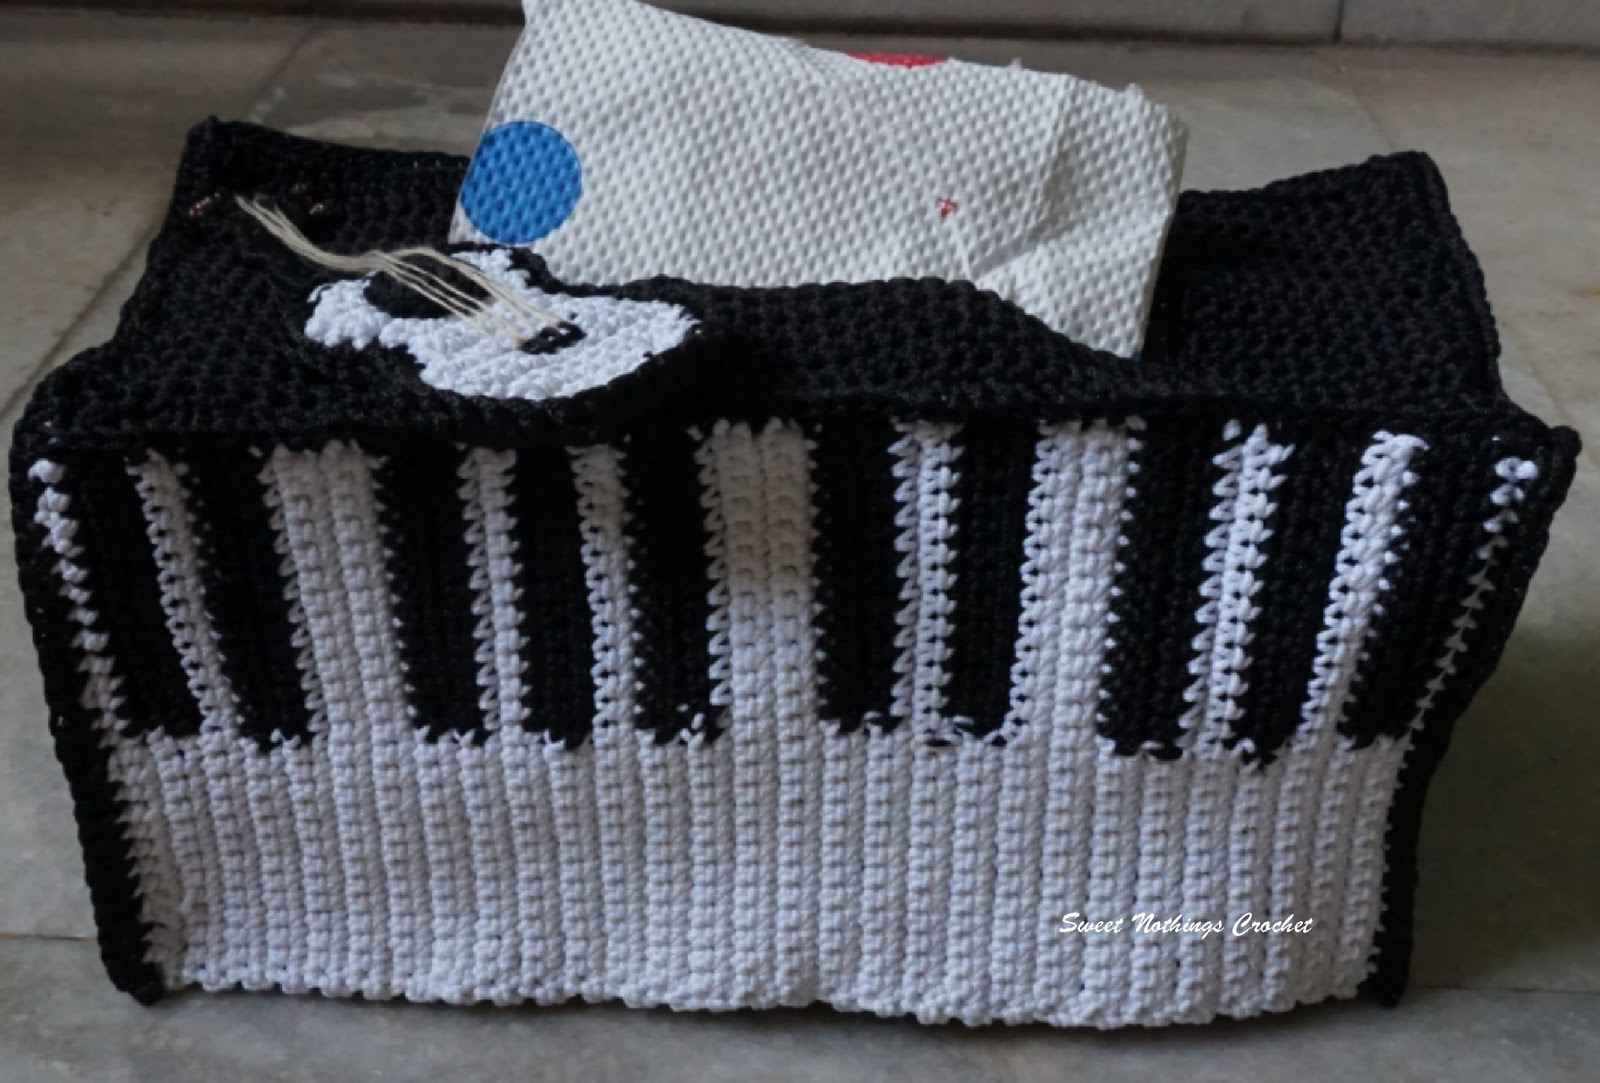 Sweet Nothings Crochet: PIANO INSPIRED TISSUE BOX COVER